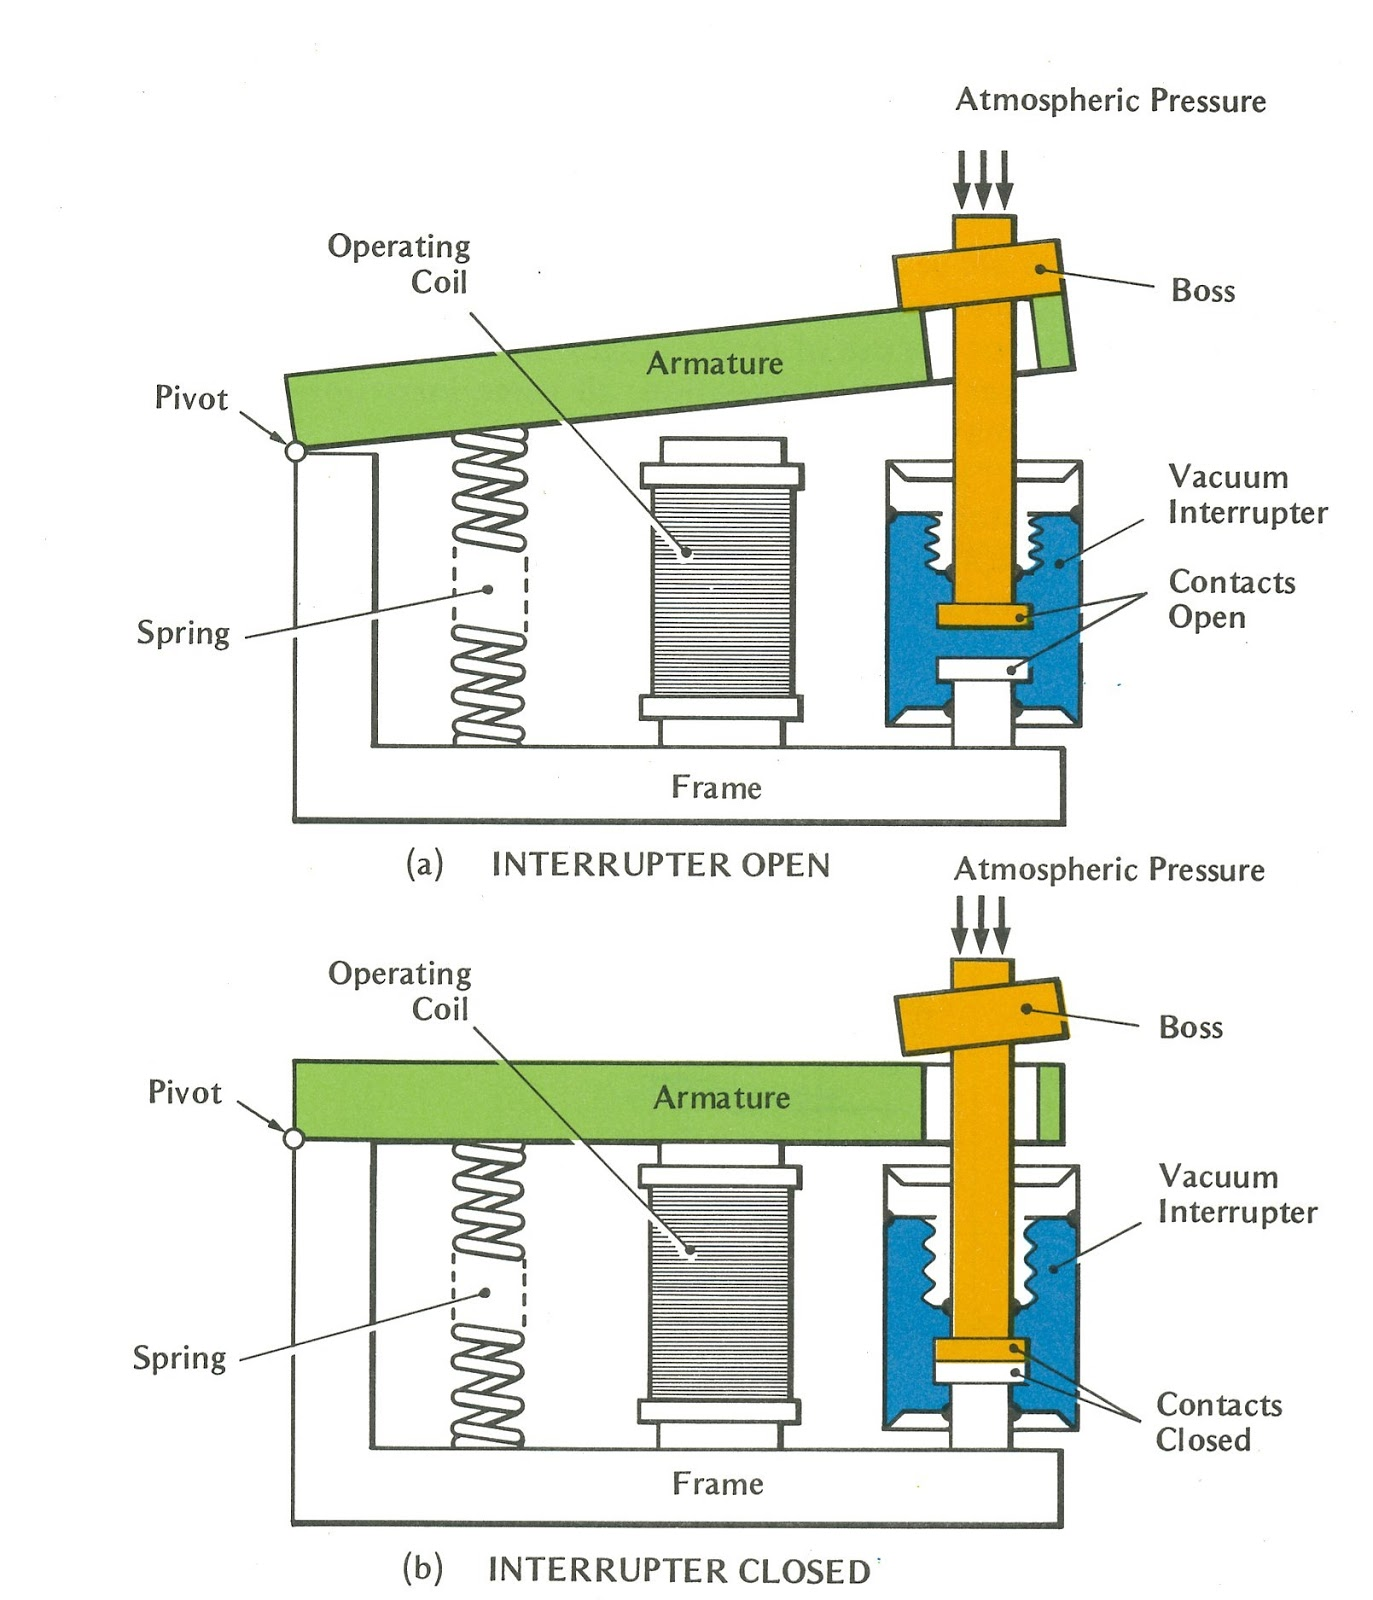 Circuit breaker - design and principle of operation 95